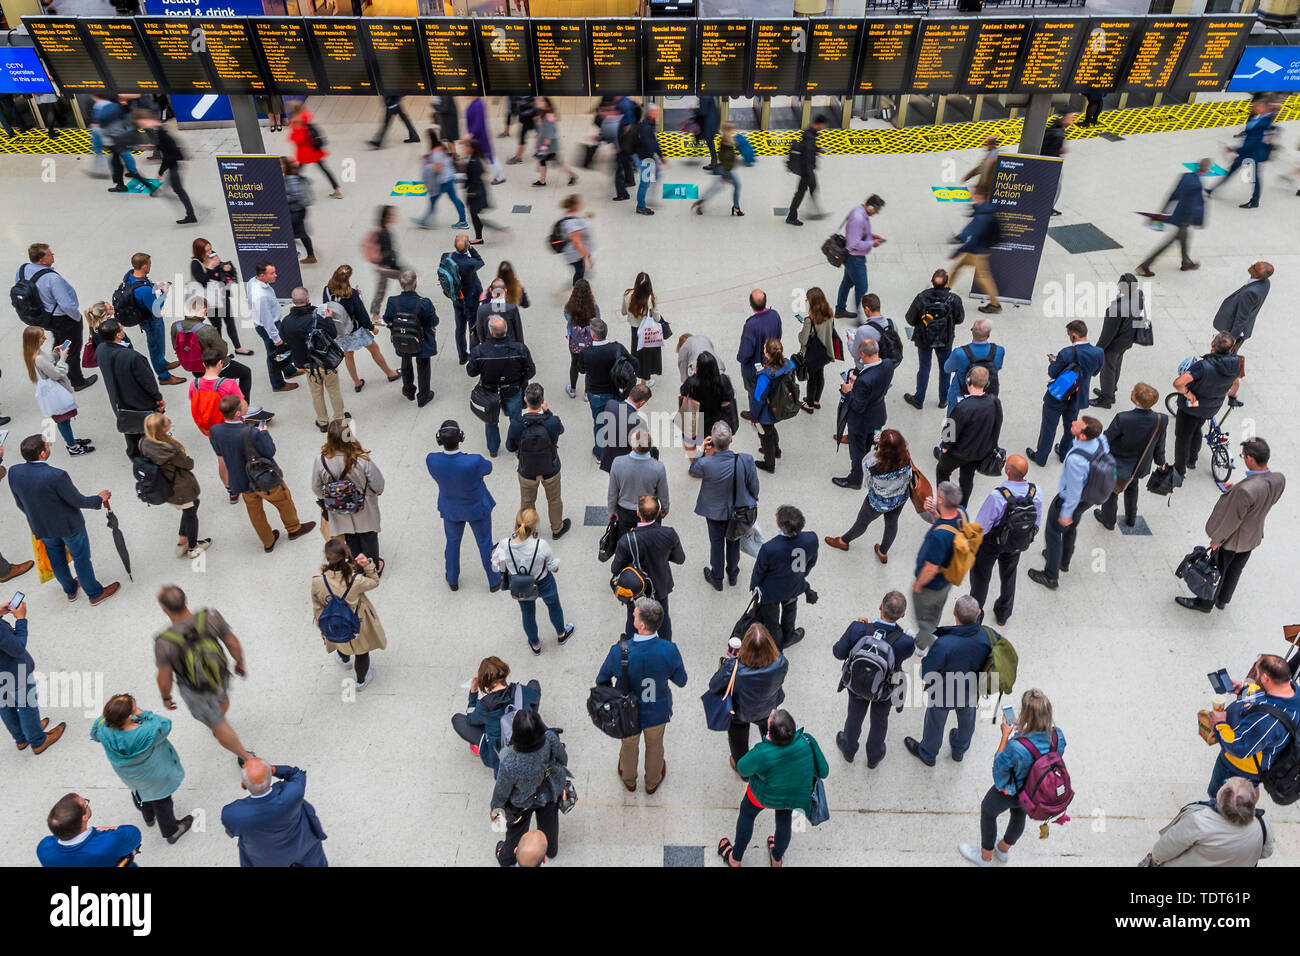 London, UK. 18th June, 2019. Crowds build up due to a reduced service because of the strike by RMT staff on SW Trains,  but are not as heavy as expected. Passengers wait for news of their trains on the concourse of Waterloo Station, London. Credit: Guy Bell/Alamy Live News - Stock Image